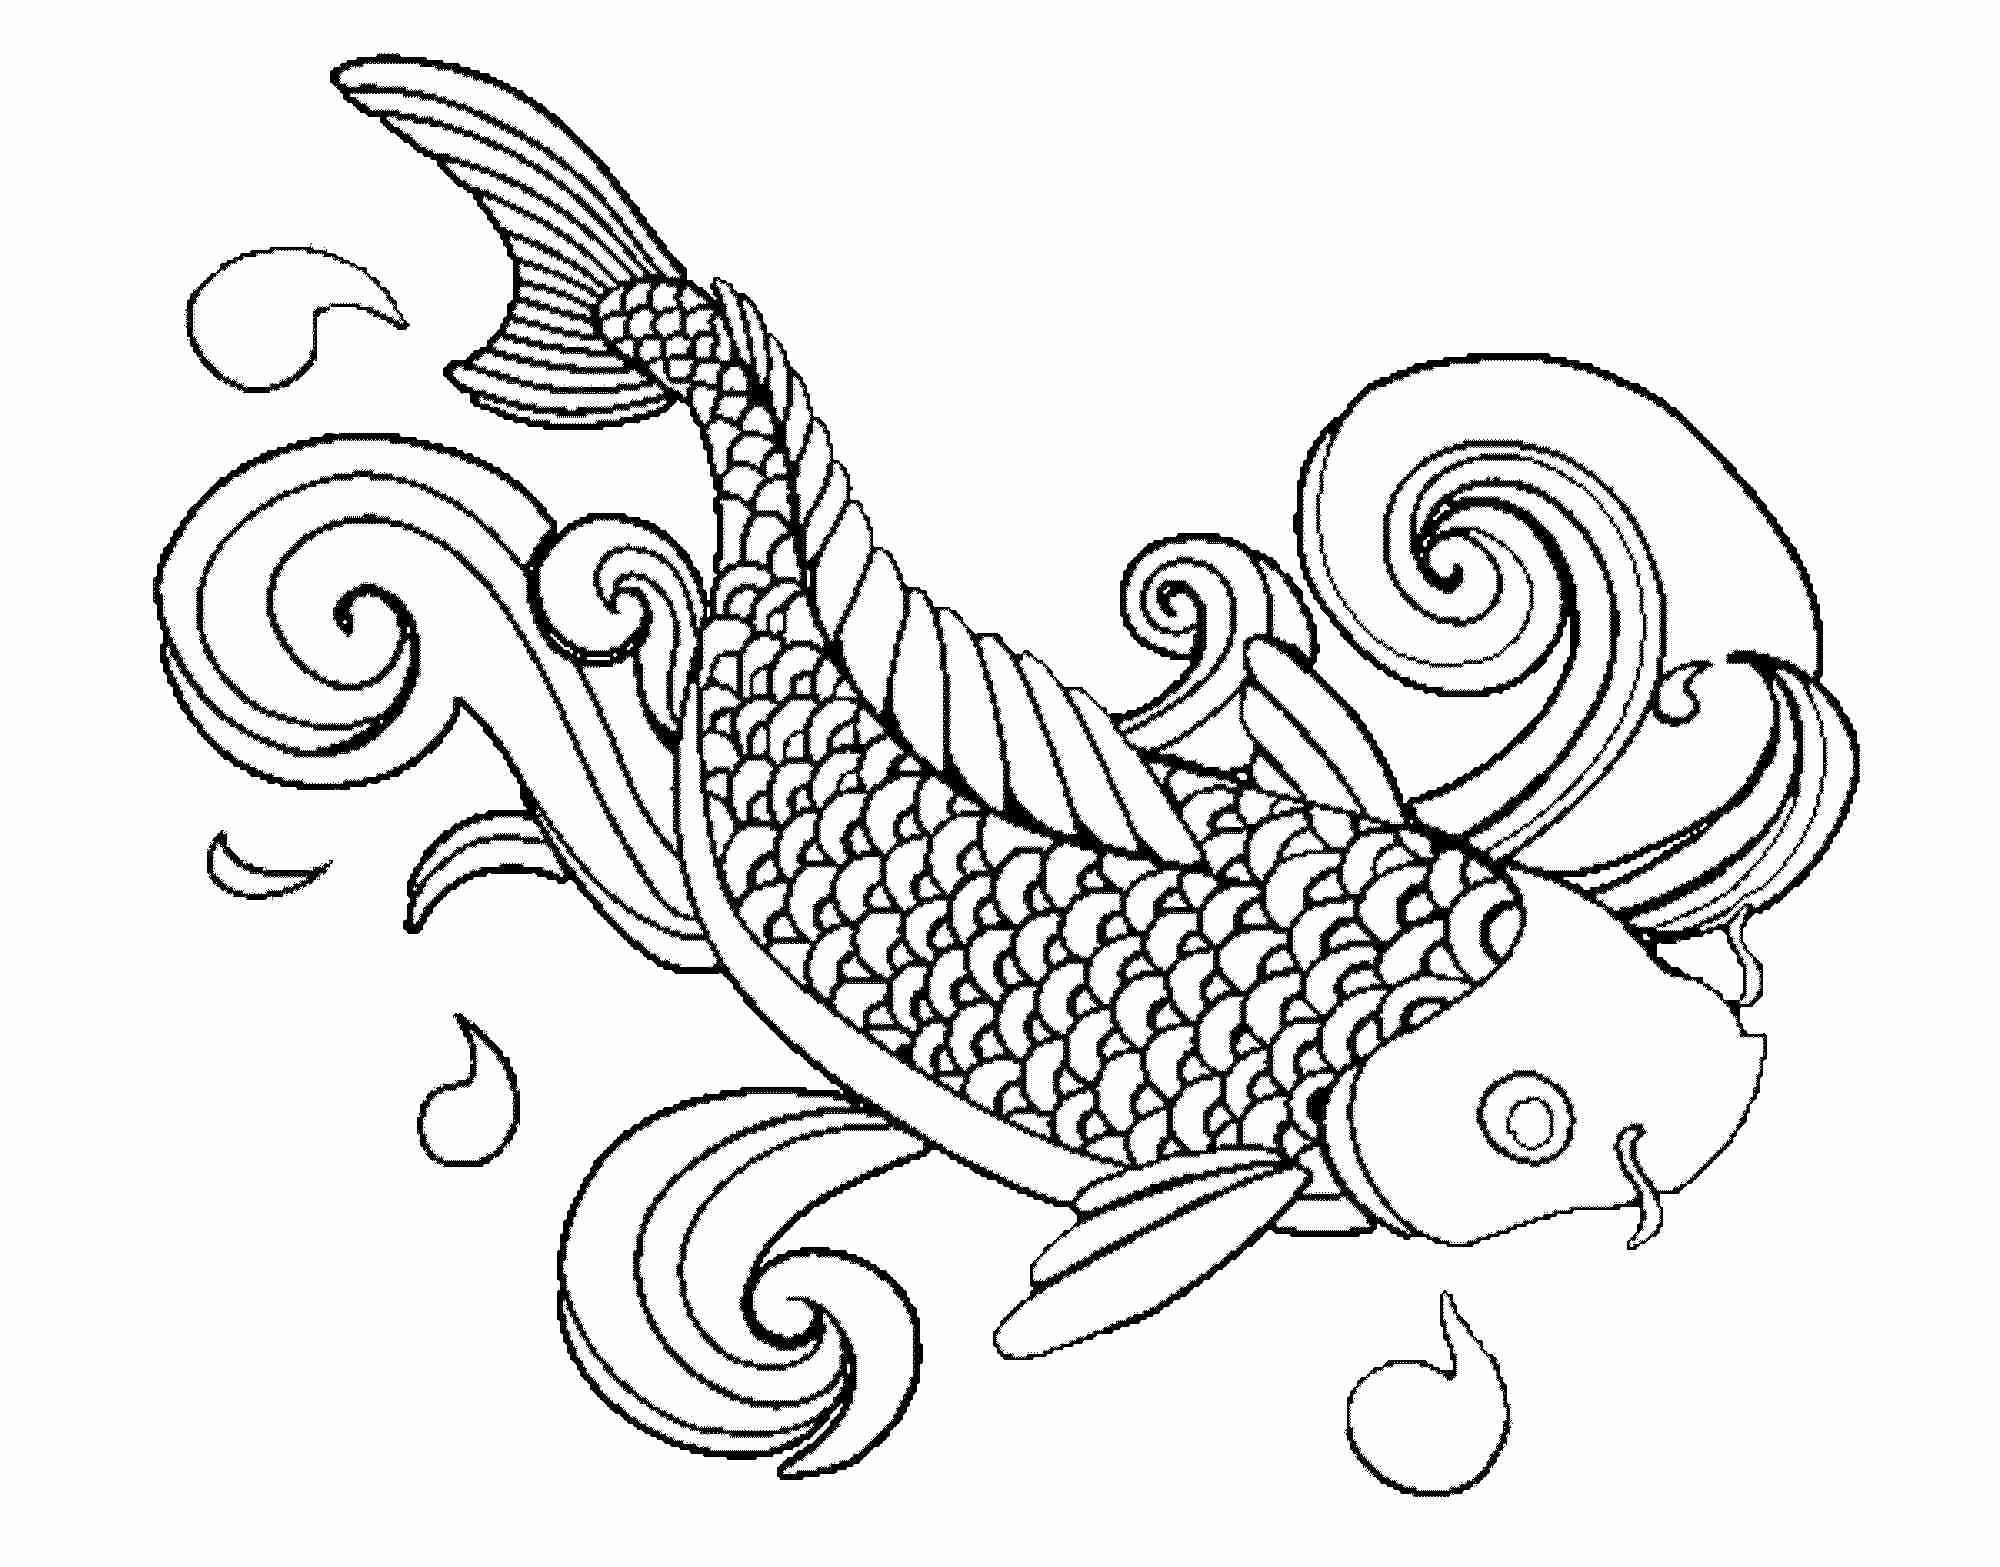 2000x1567 Free Japanese Koi Fish Coloring Pages For Adult Striking Coy